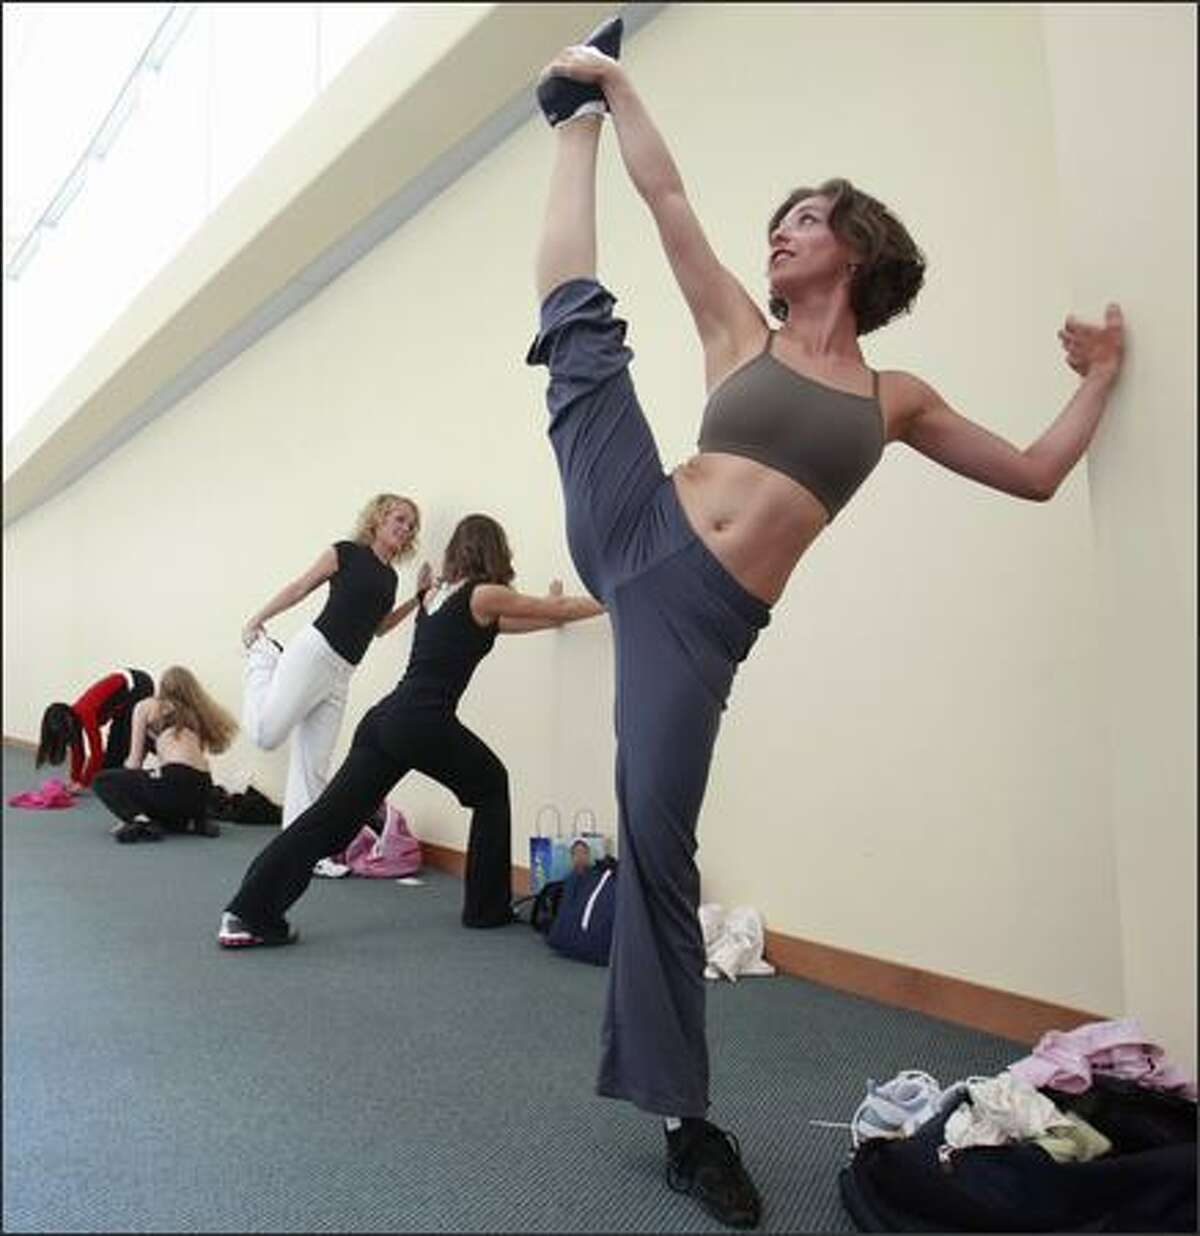 Sarah Frewen, 28, of Mountlake Terrace, stretches before her audition for the Seattle Seahawks cheerleader squad, the Sea Gals.